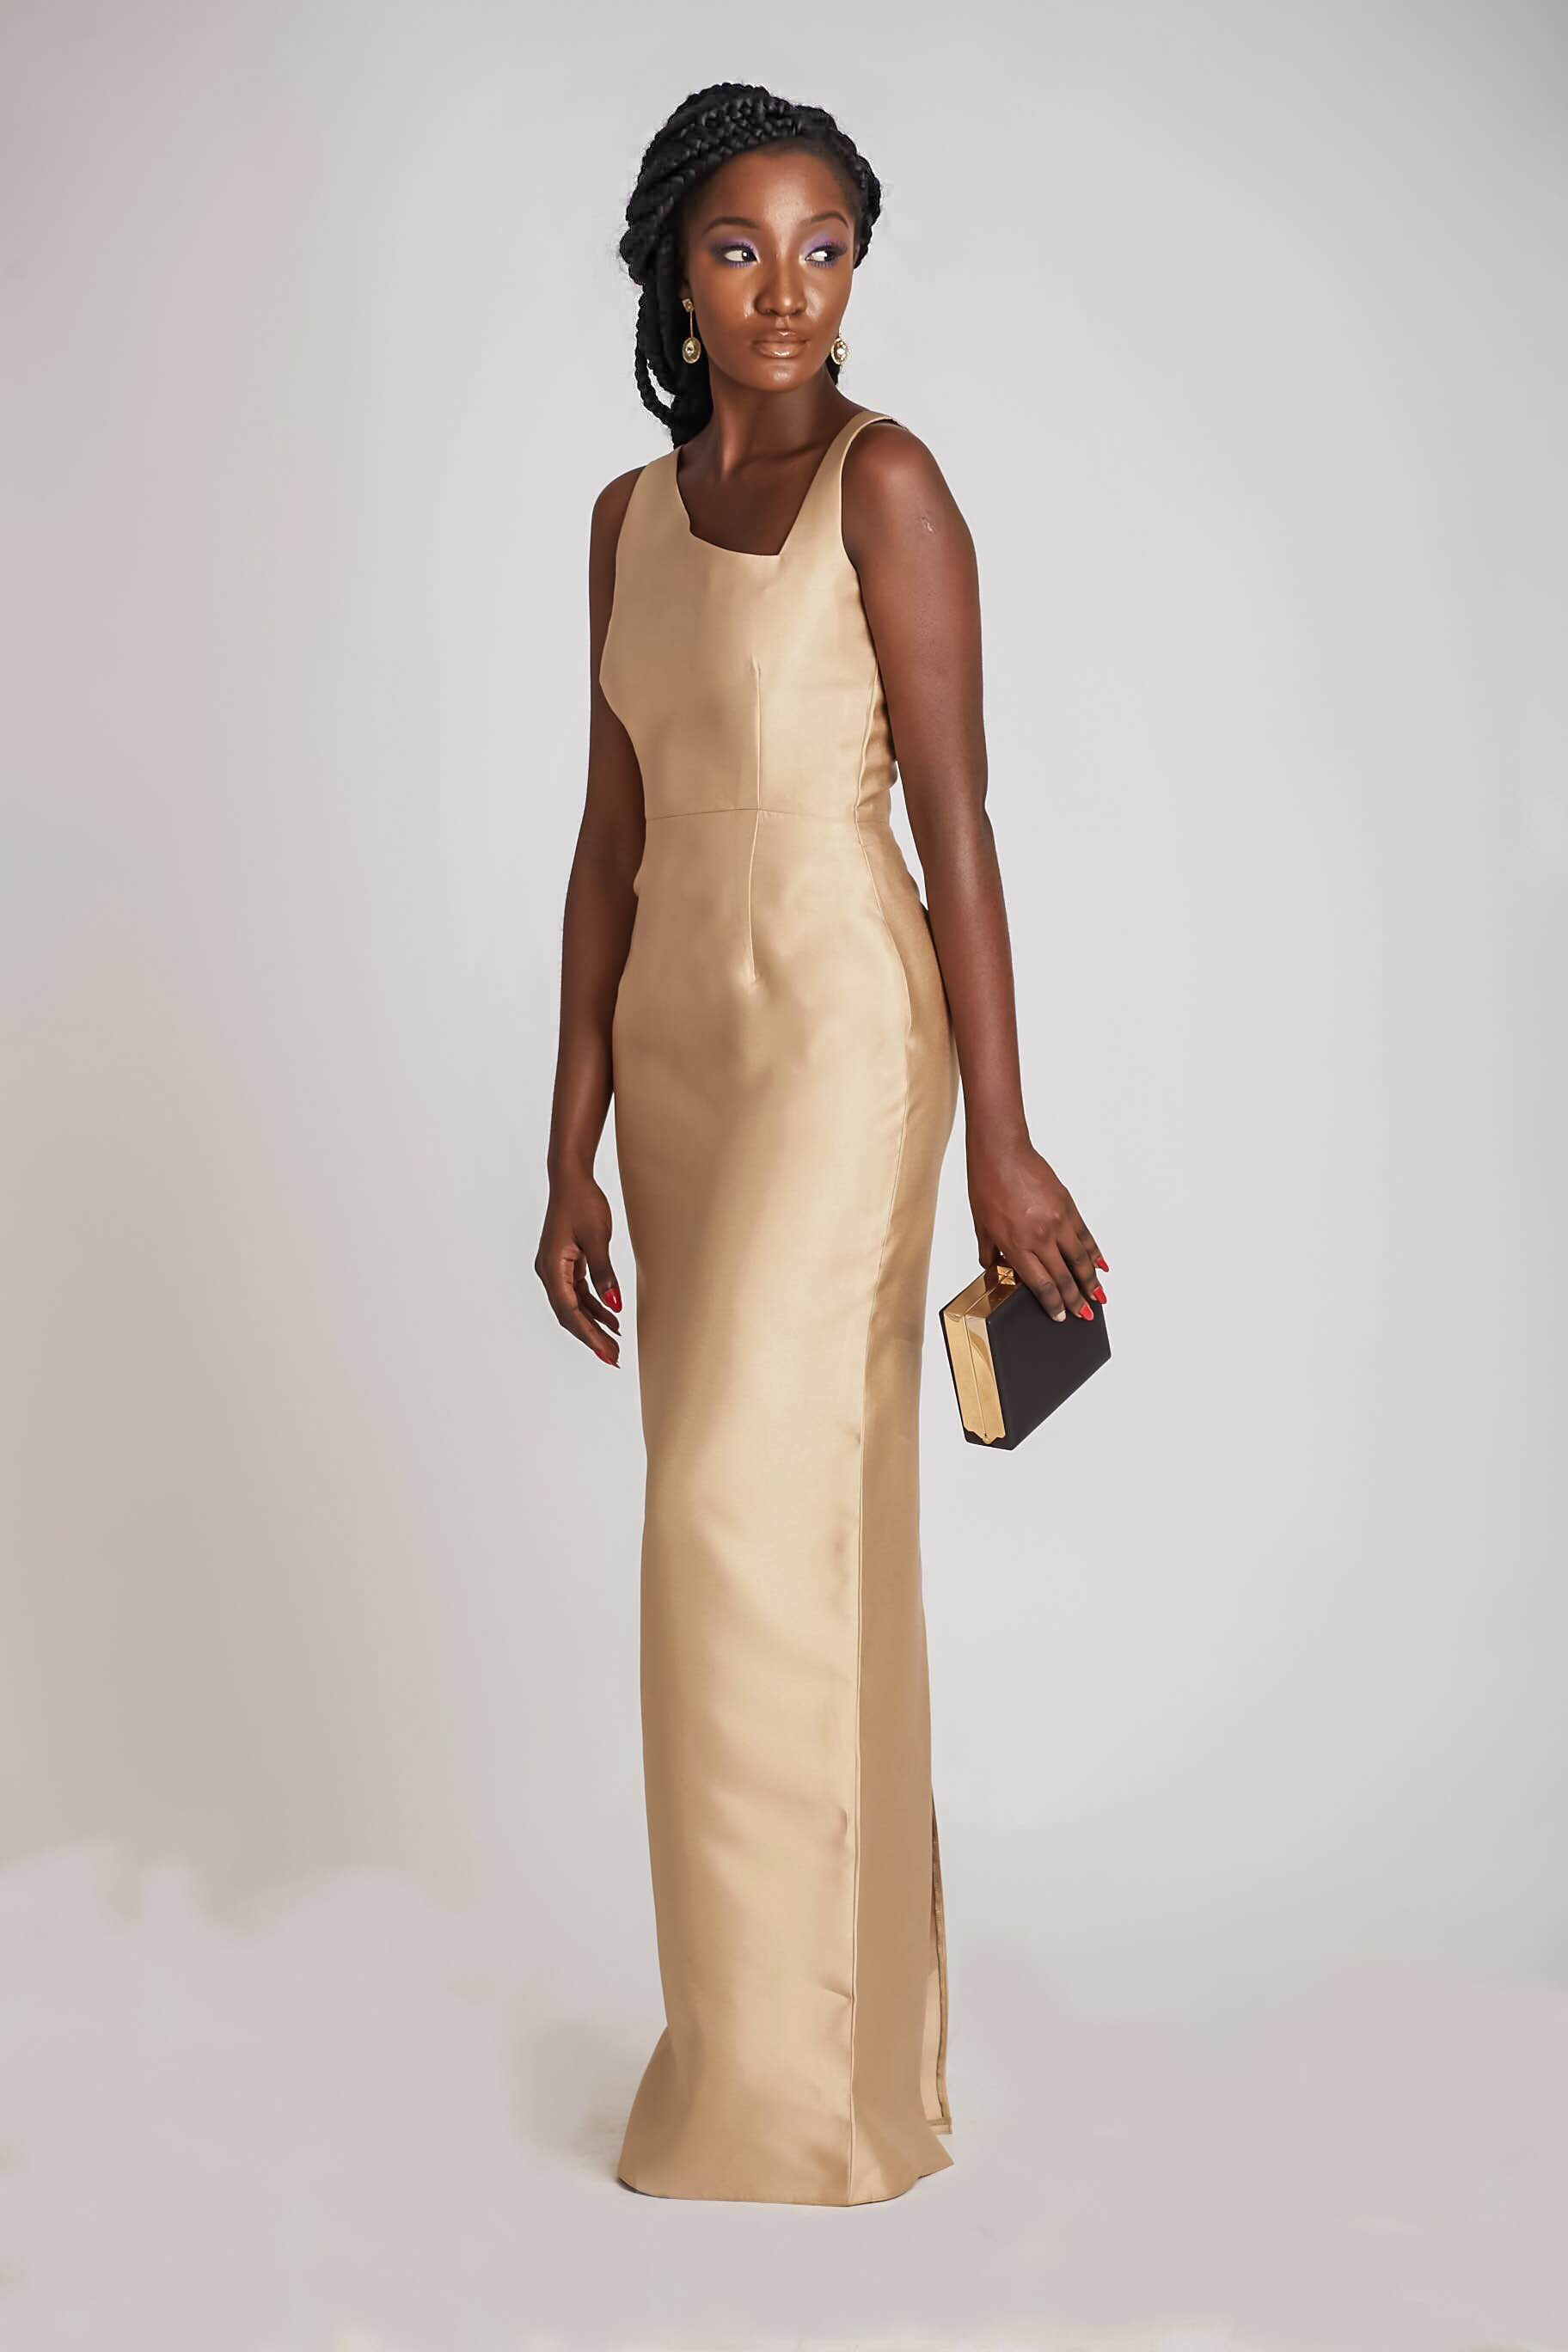 Imad Eduso - BN Style - Collection Lookbook - BellaNaija.com 021